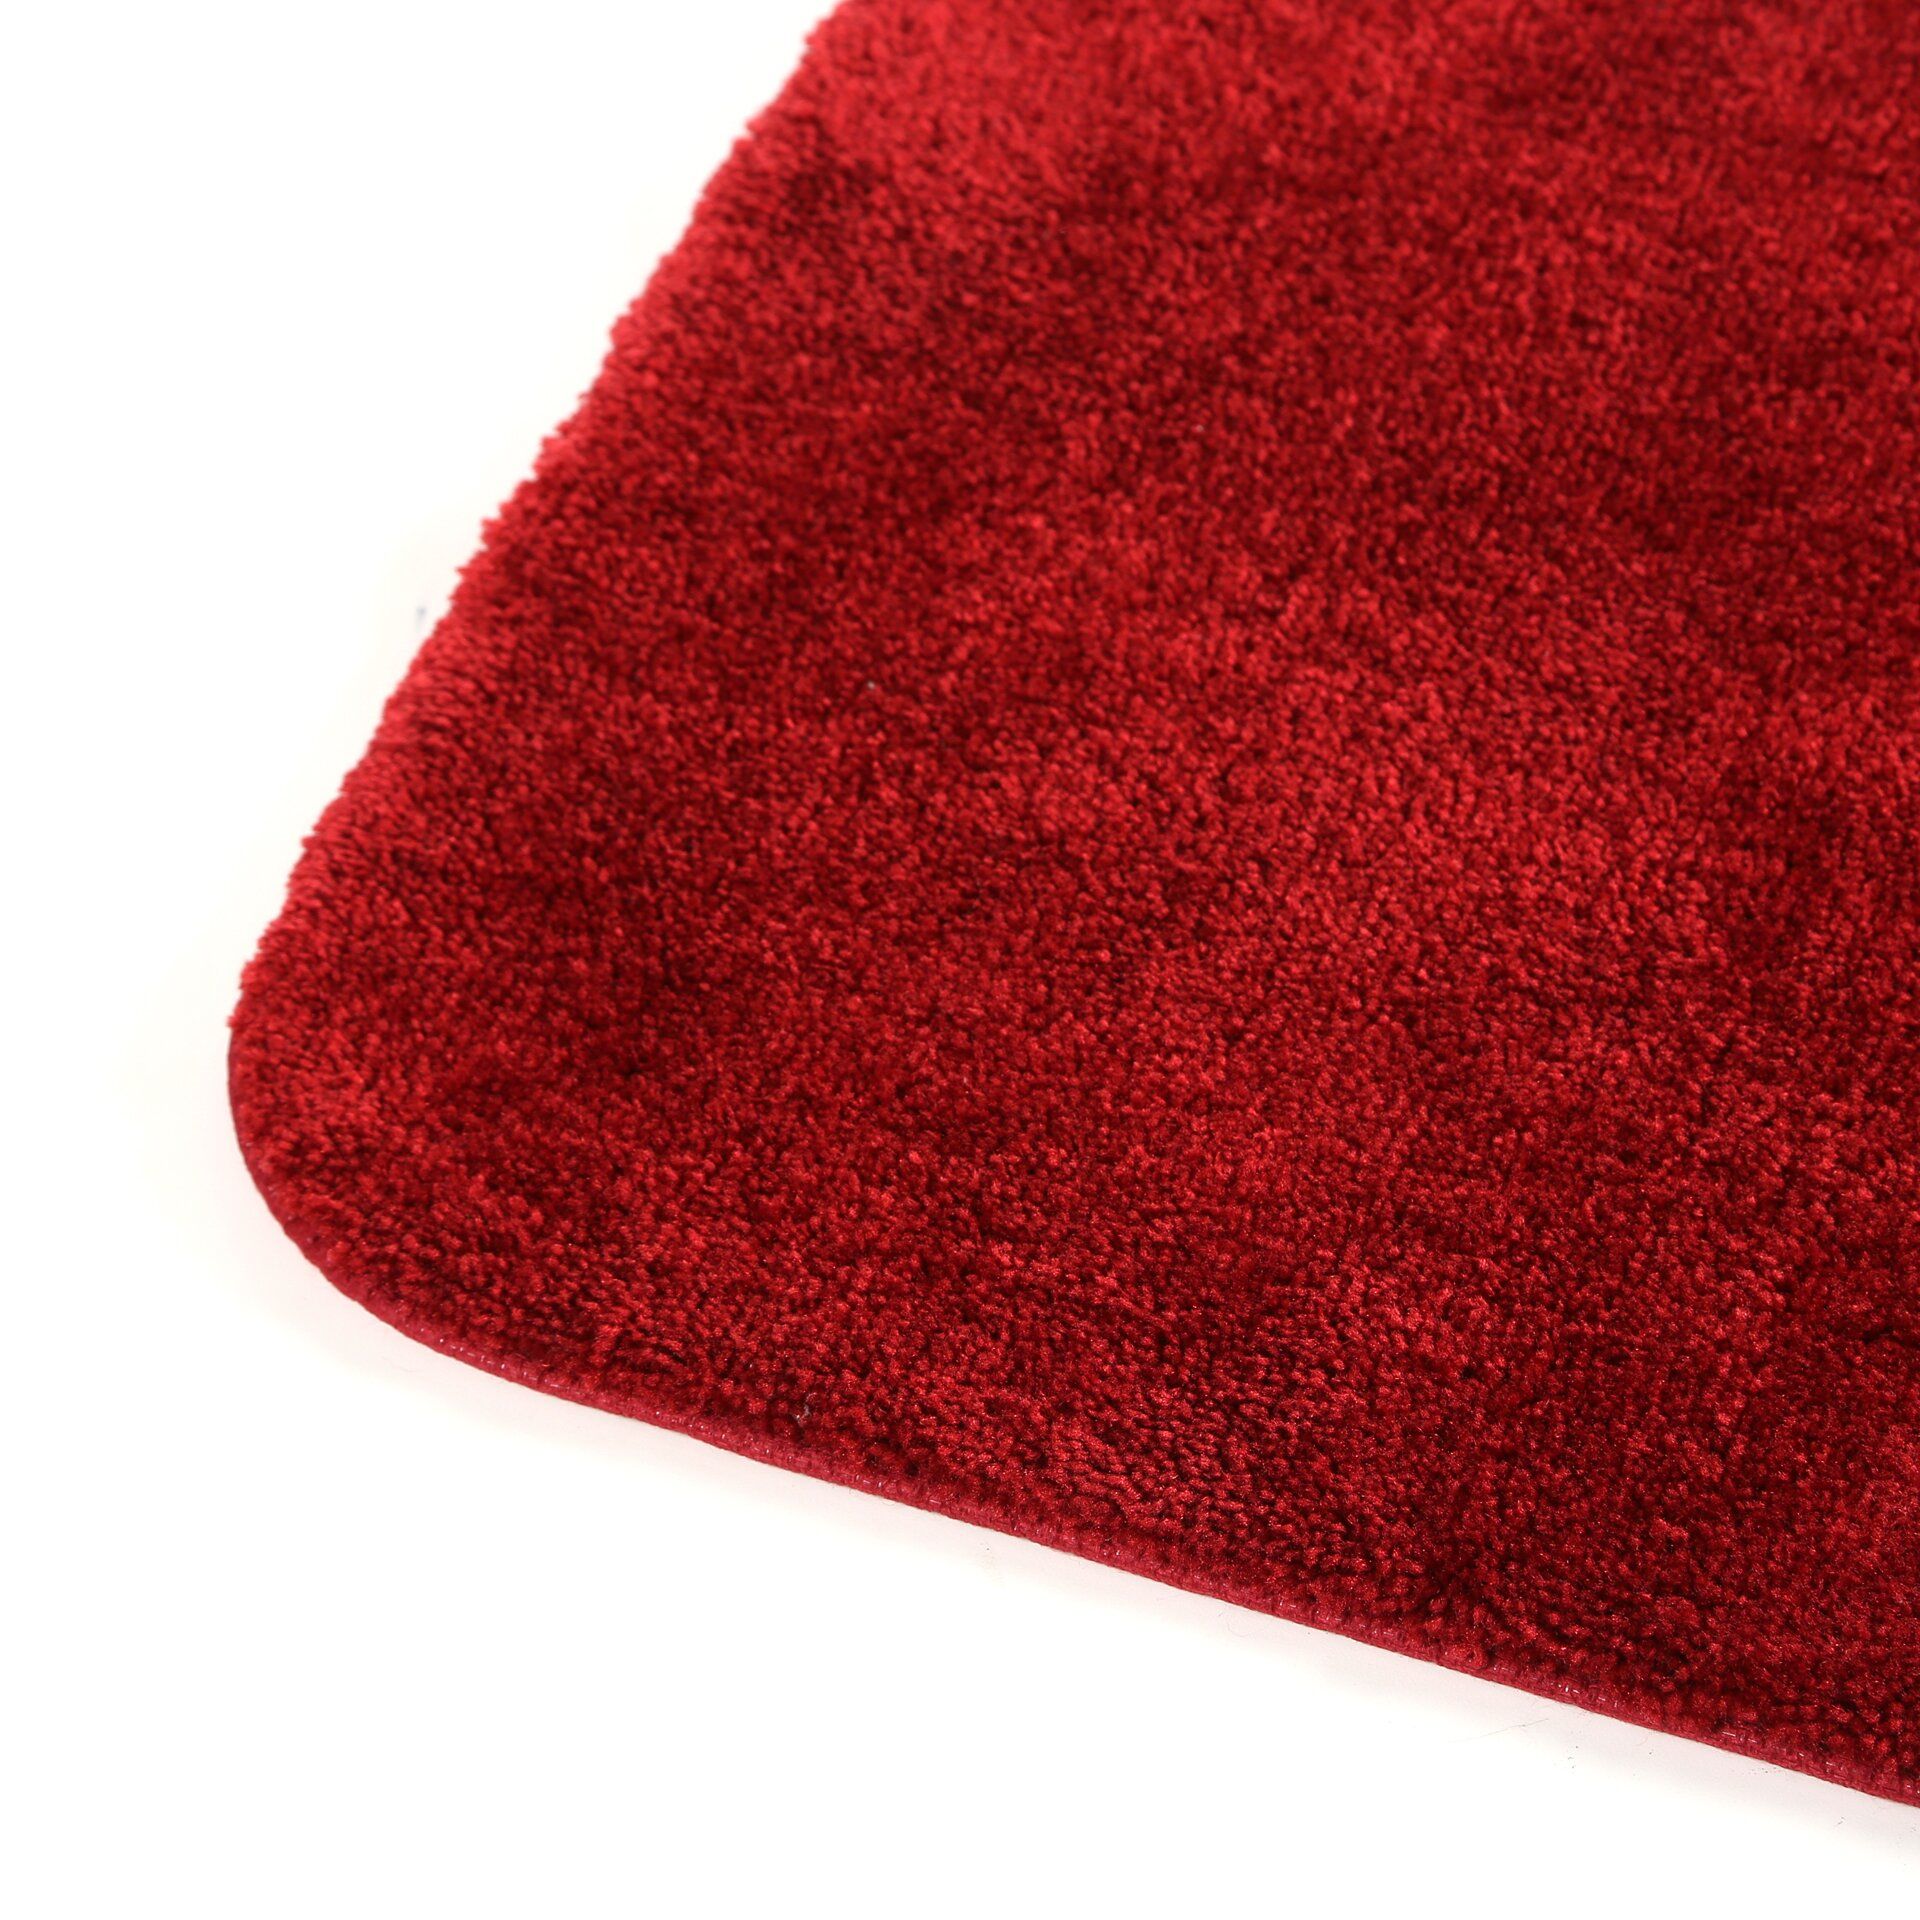 charlton home stanley 2 piece red bath rug set reviews wayfair. Black Bedroom Furniture Sets. Home Design Ideas